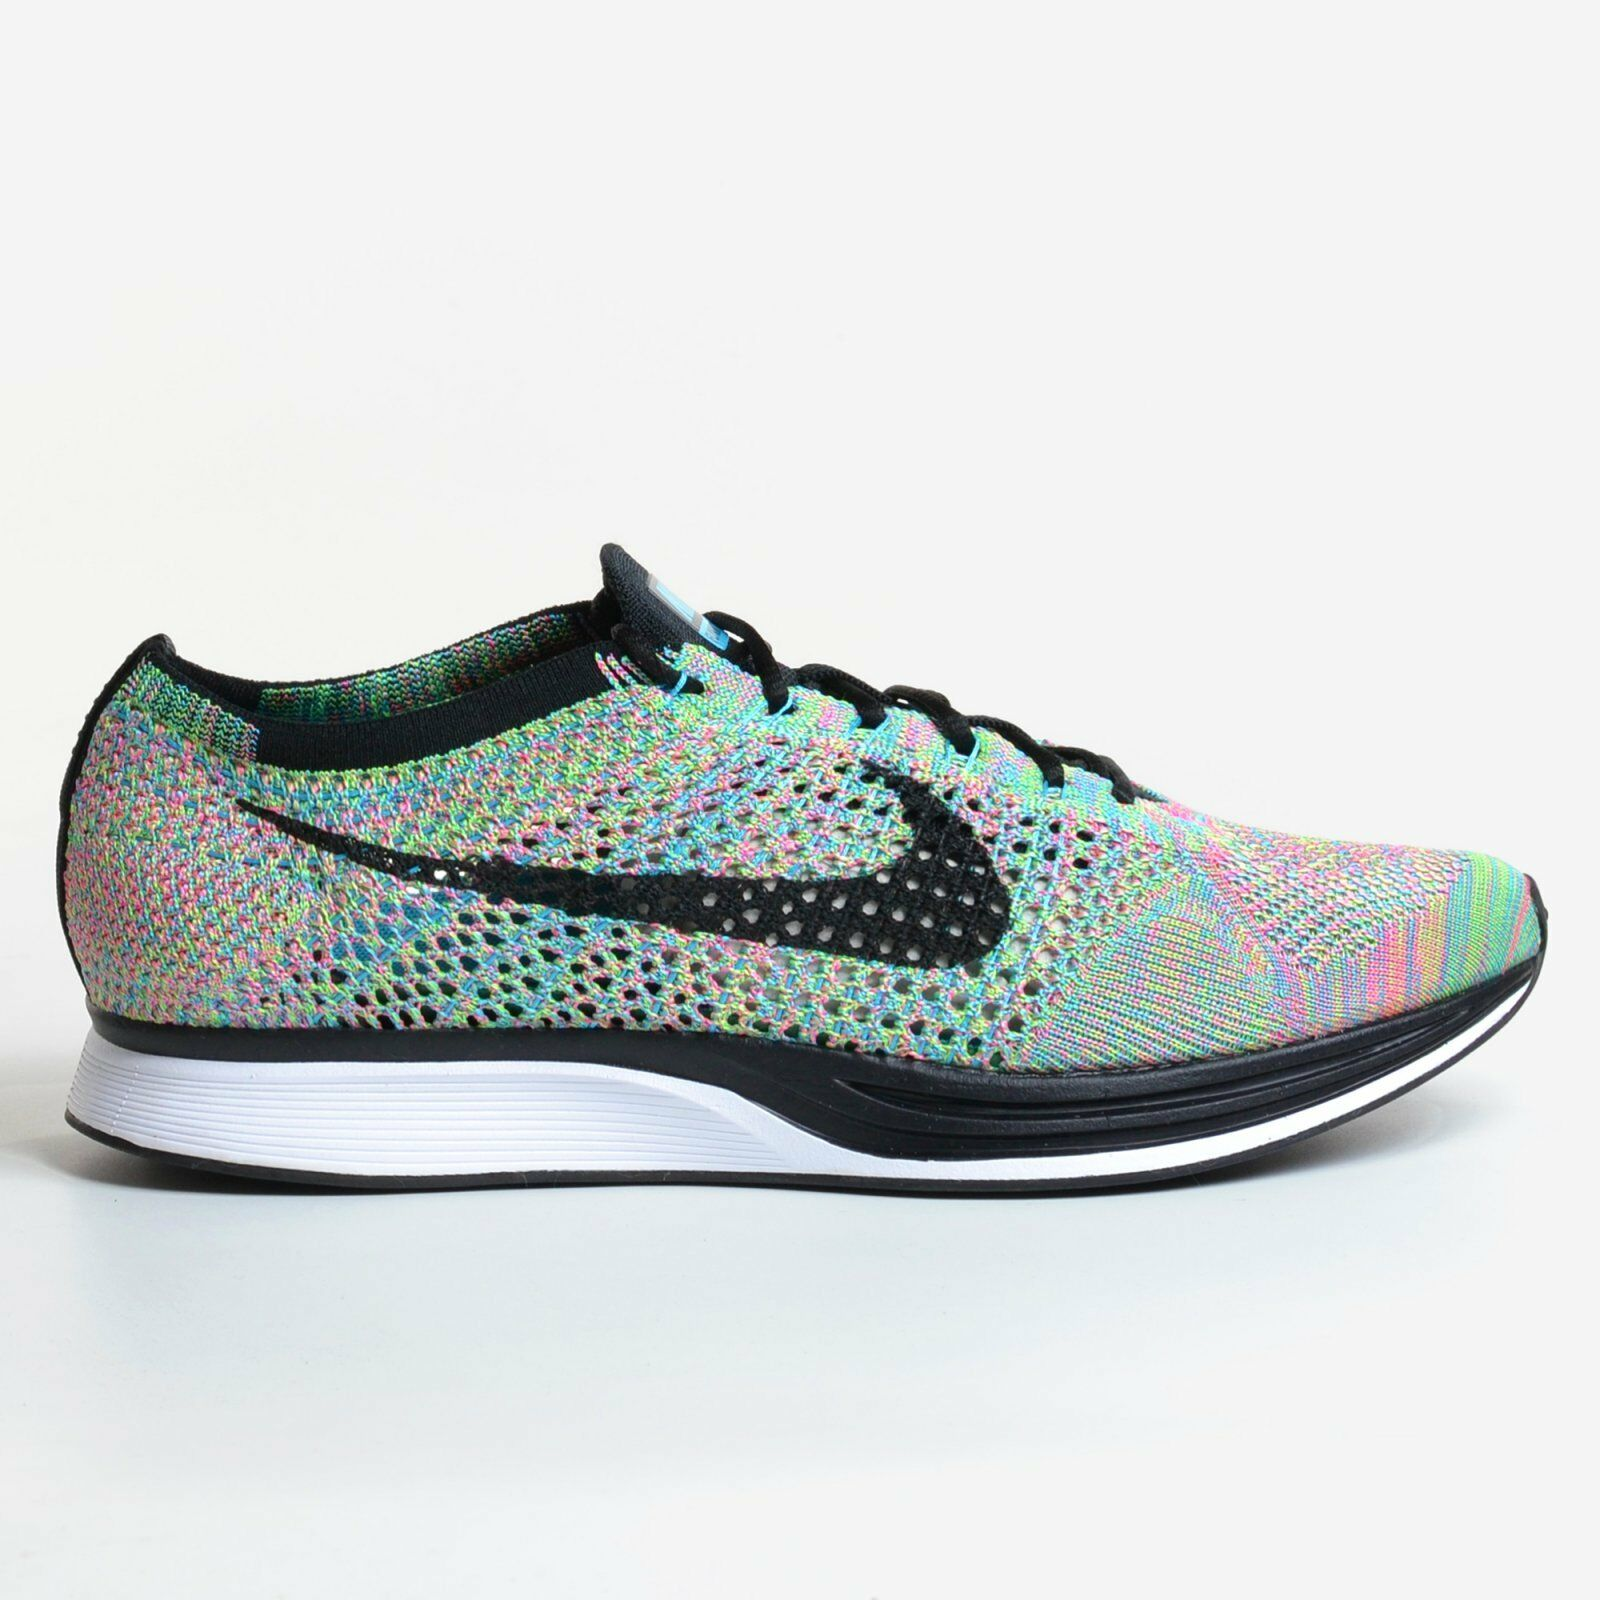 Nike Flyknit Racer Multicolor 2.0 Green Strike 2017 Black Running DS 526628-304